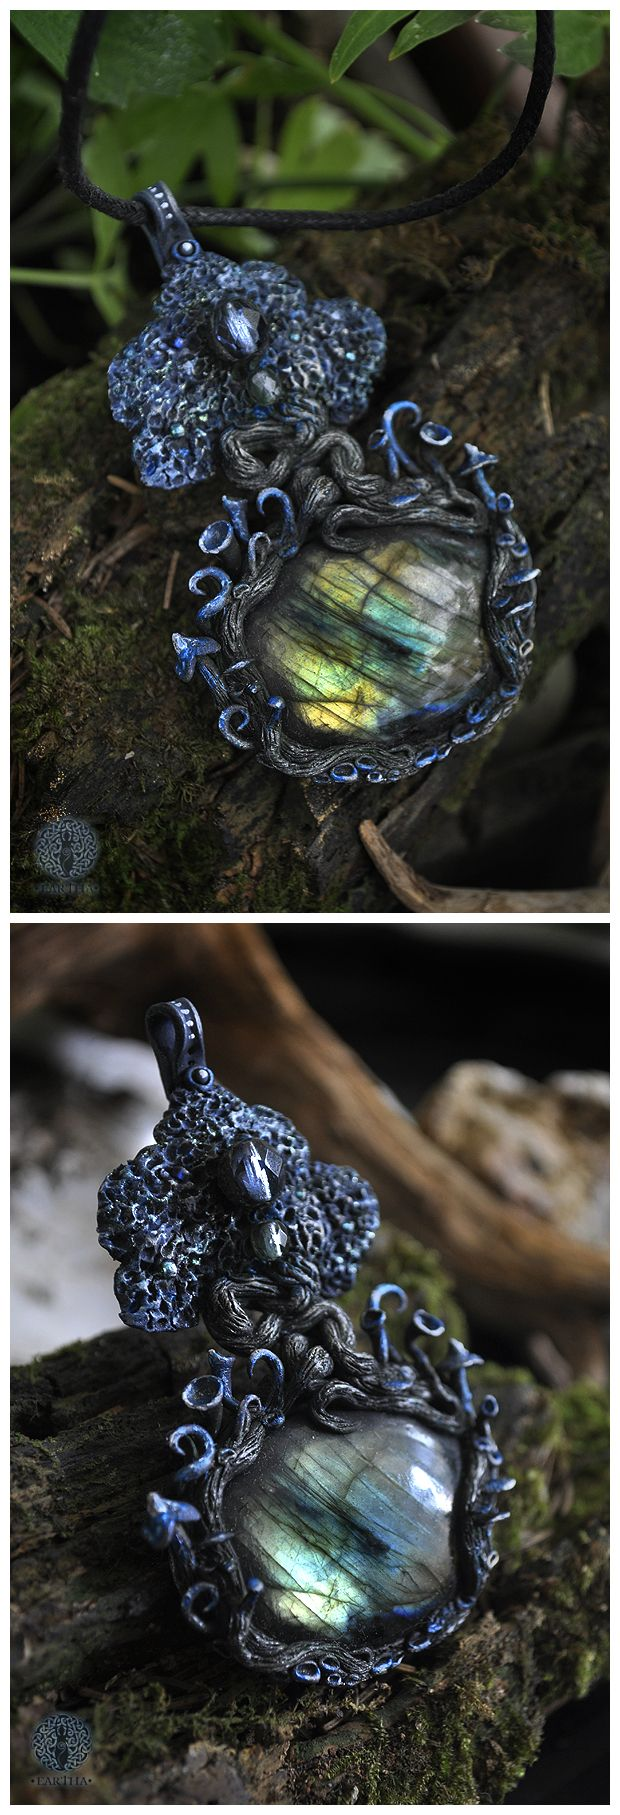 Moonlight Cedrus #fantasy #goddess #fairytale #tree #treeoflife #moon #moonlight #mushrooms #lichens #magic #magical #night #labradorite #glassbeads #polymerclay #jewelry #handmade #ooak #unique #pendant #sculpture #gemstone